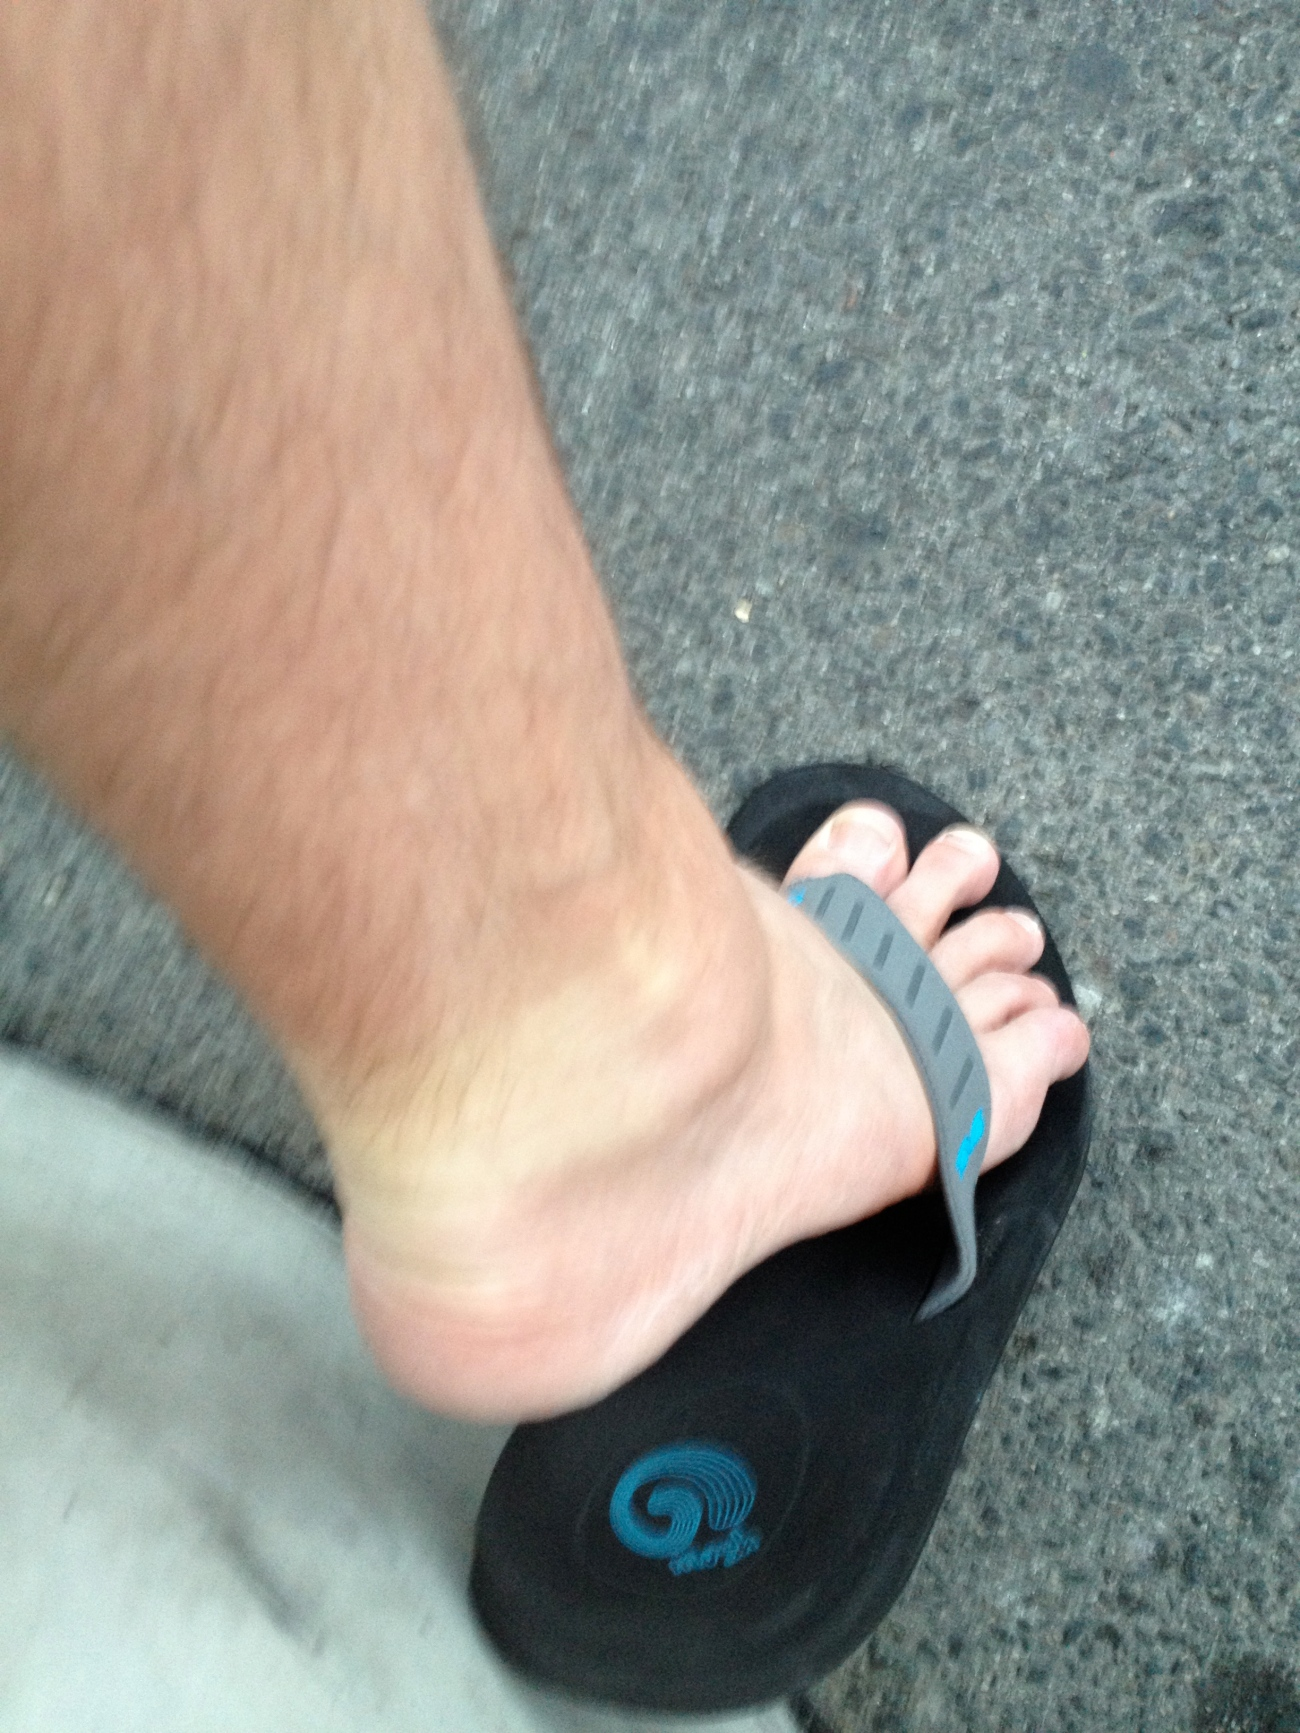 My right ankle is usually a dainty number, this swelling concerned me enough to take a picture of it.